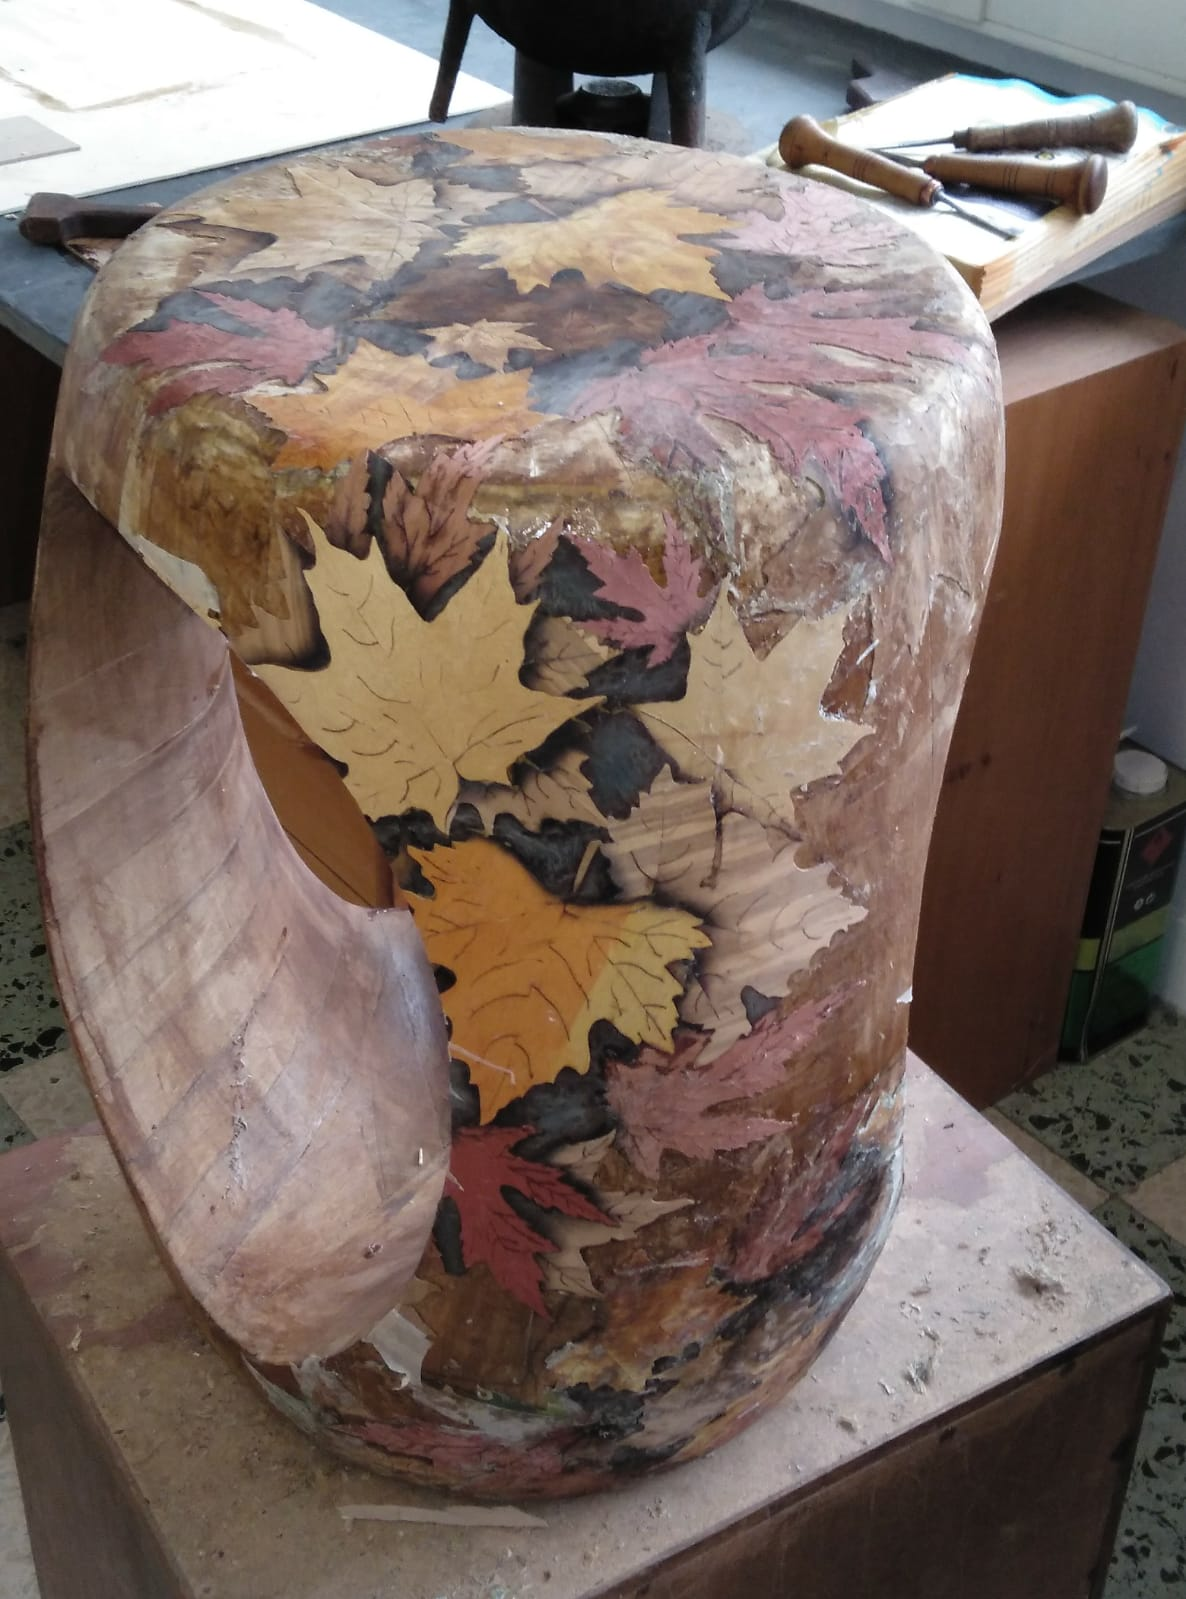 The Pioneering Handcrafted Creations at CULTURE Creative Hub Murano Erosion stool flower pioneering handcrafted creations The Pioneering Handcrafted Creations at CULTURE Creative Hub The Pioneering Handcrafted Creations at CULTURE Creative Hub Murano Erosion stool flower